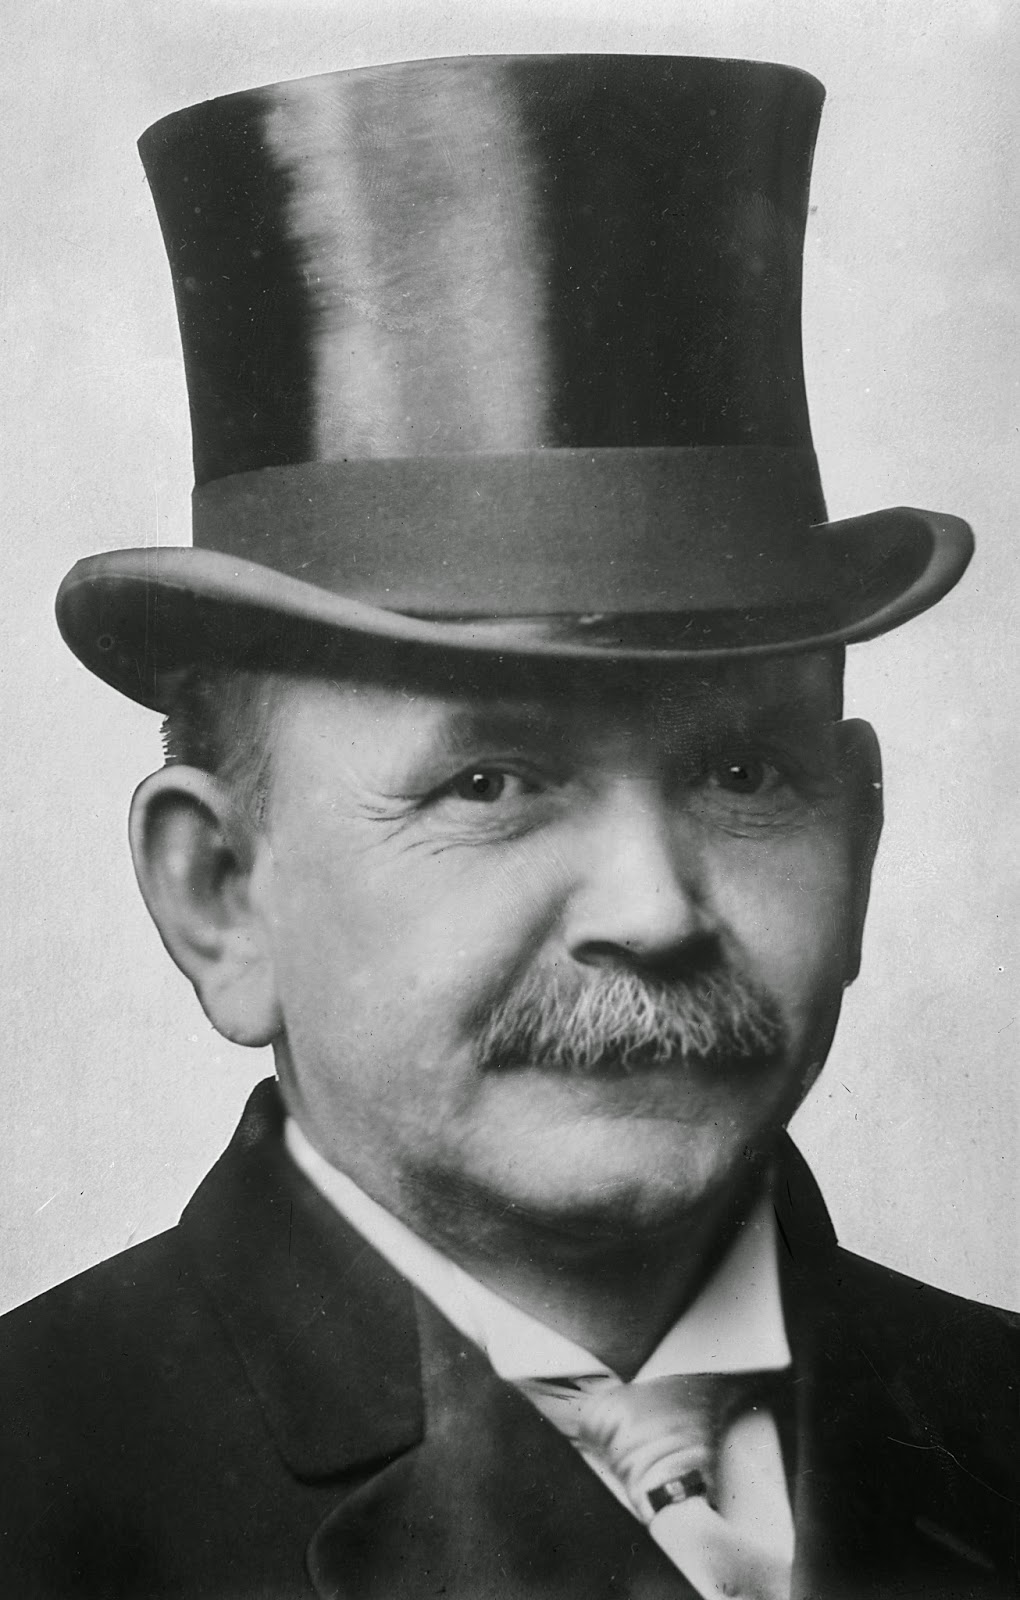 man with top hat and moustache